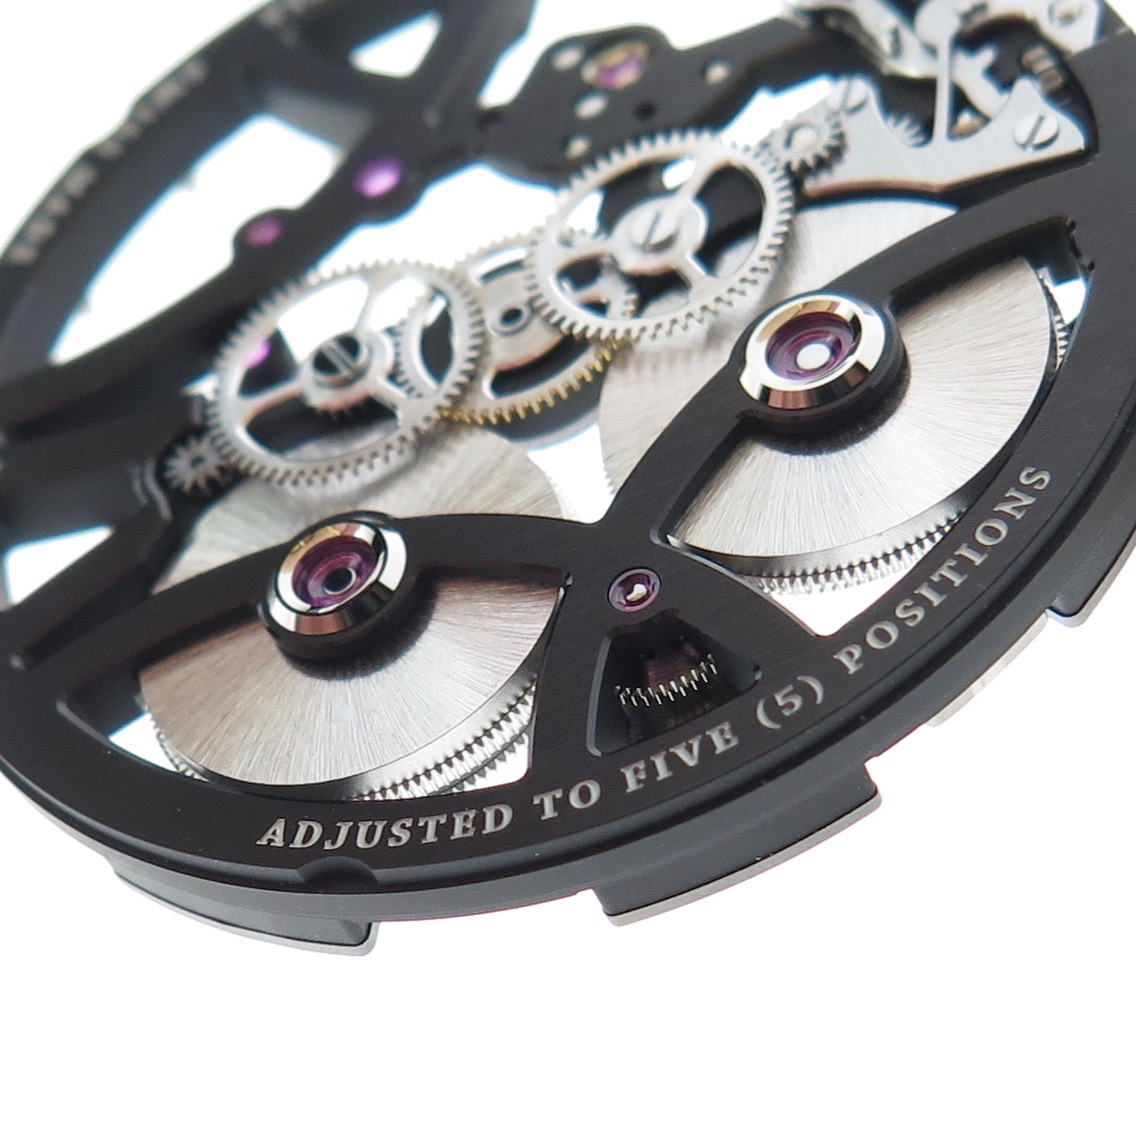 The -adjusted- engraving. Refers to the number of different positions the watch is tested in.